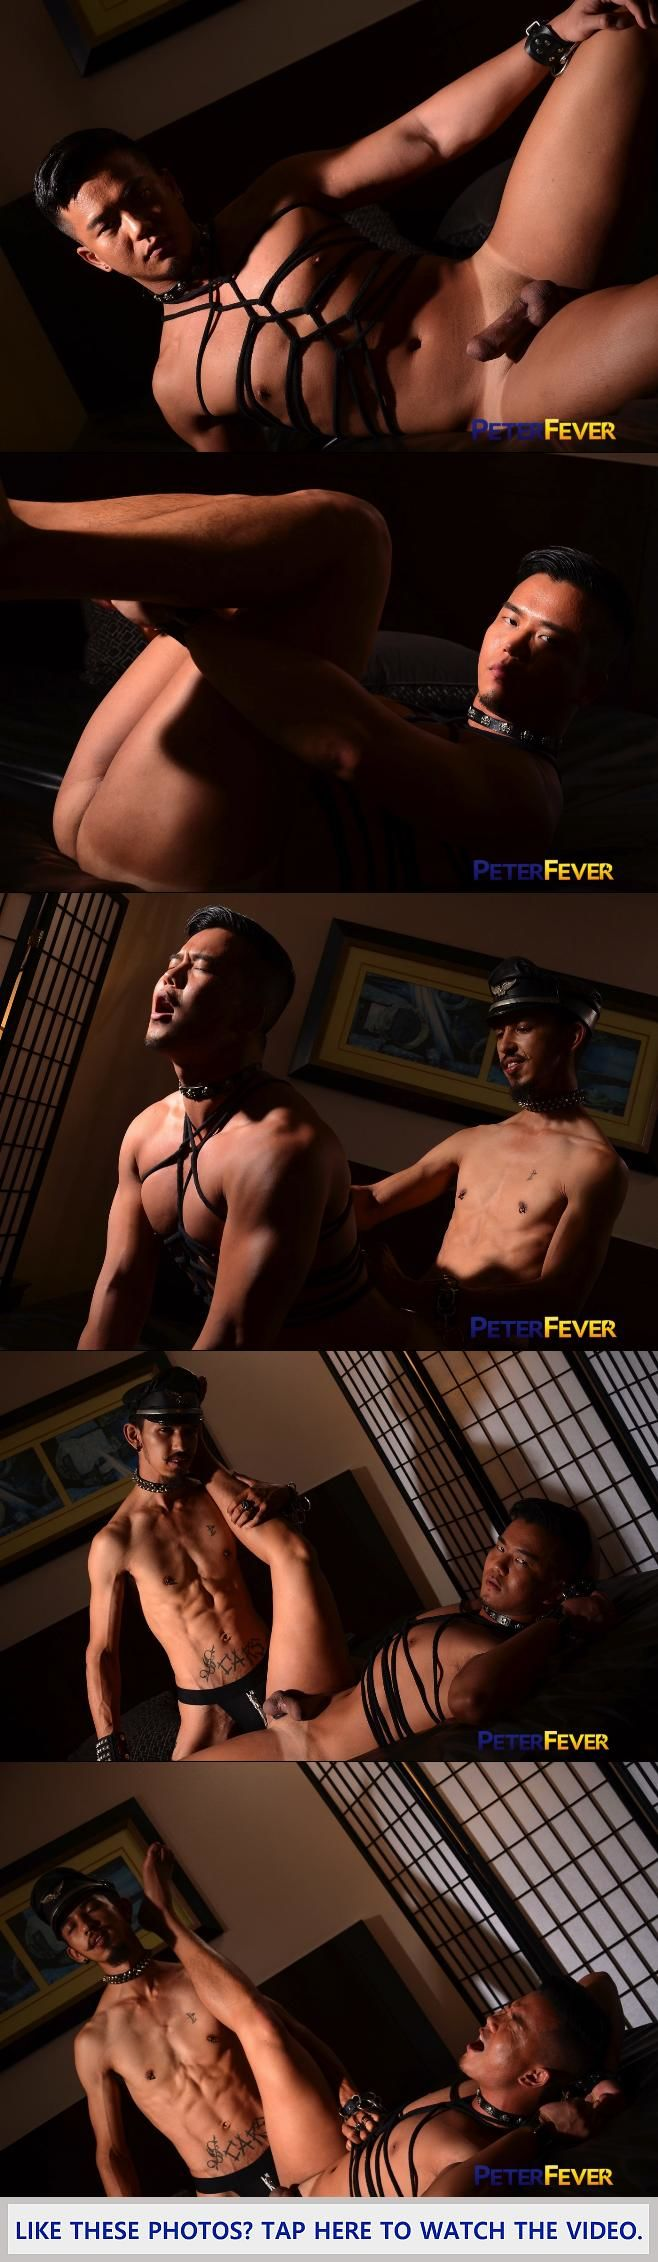 Peter Fever Kink: Rave Hardick & Alex Chu 1